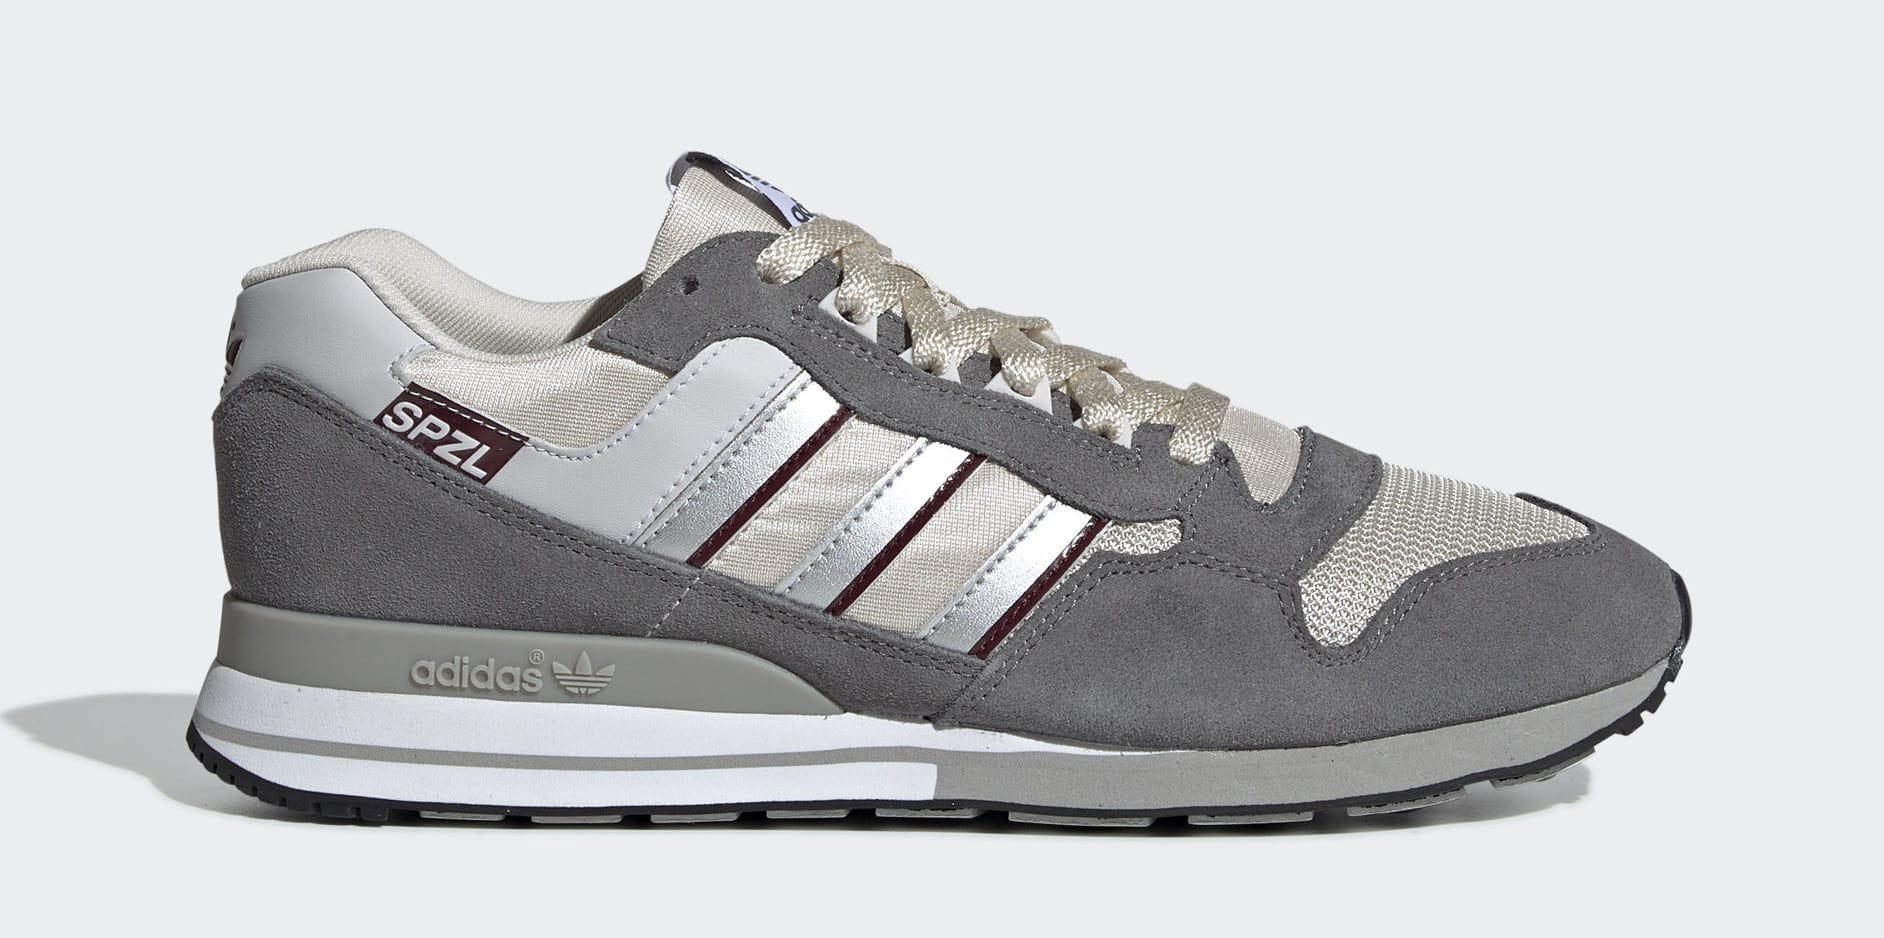 Adidas ZX 530 Spezial Lateral F35718